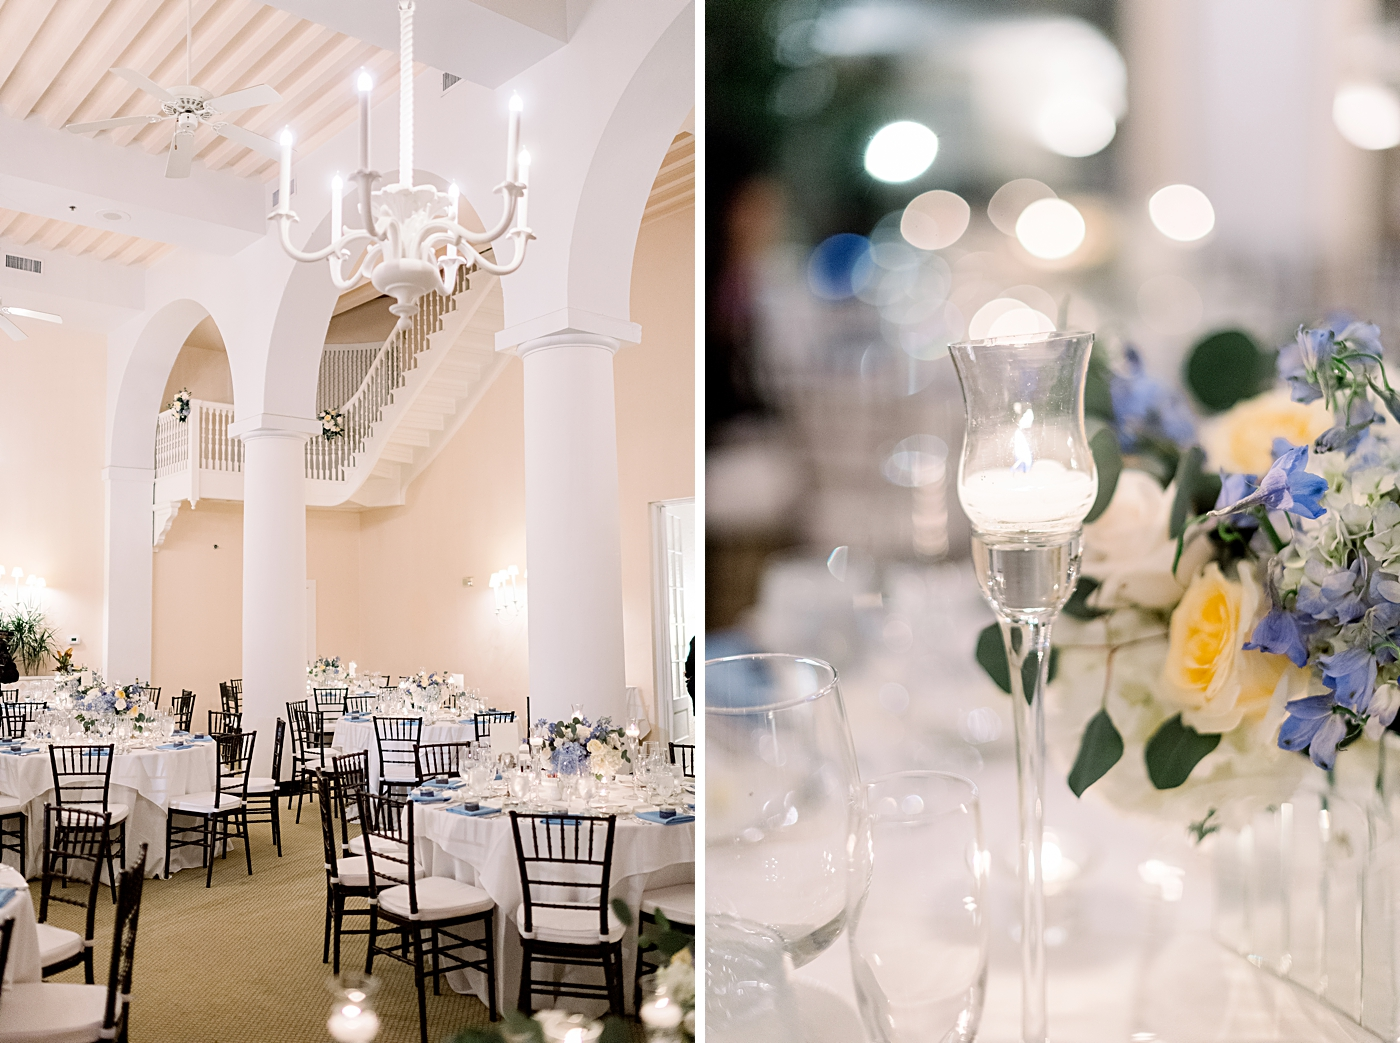 colony house wedding reception in lake wales